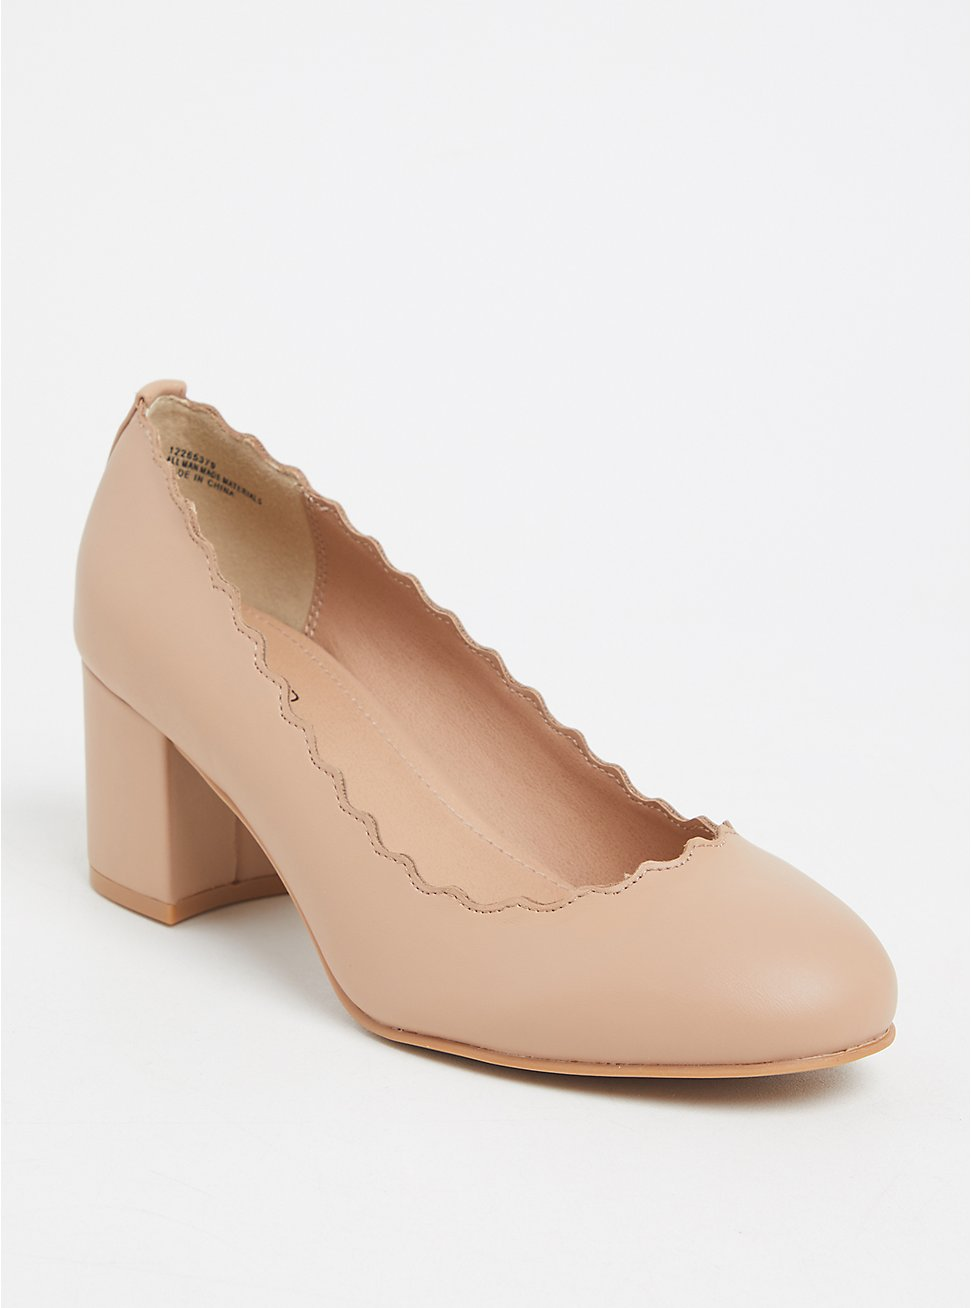 Nude Faux Leather Scalloped Pump (WW), TAN/BEIGE, hi-res